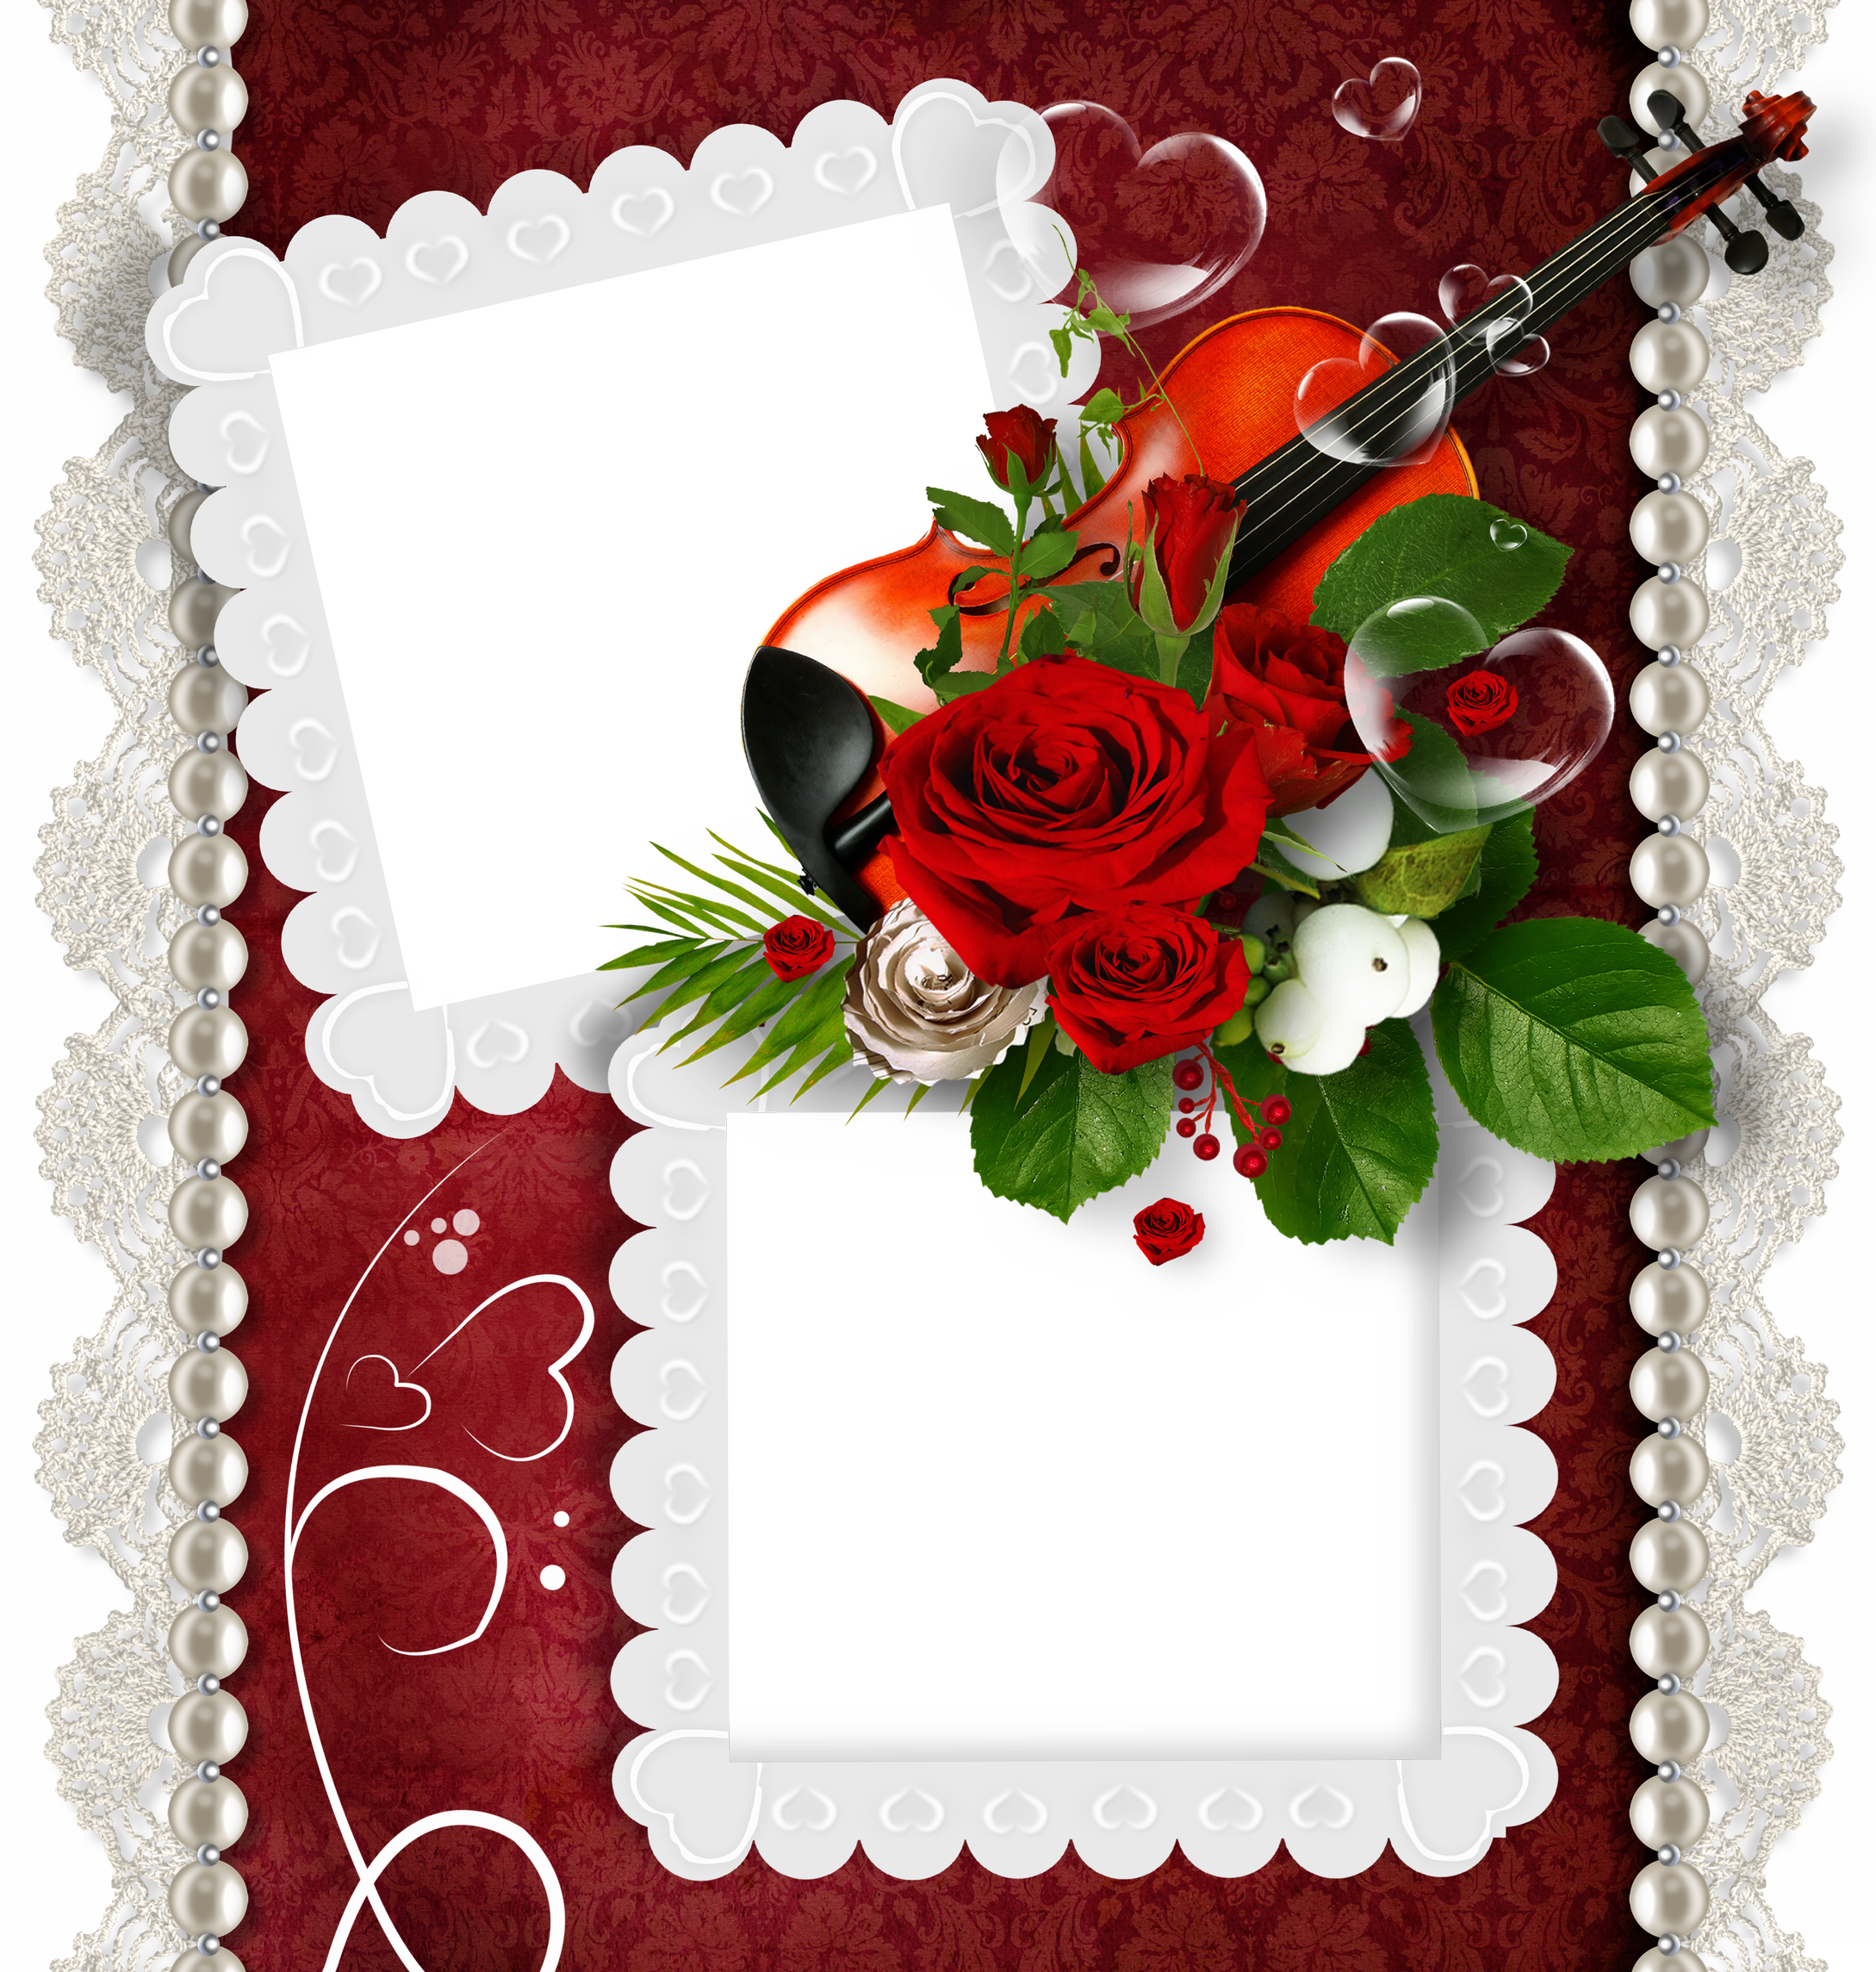 Pin by kashif on Photoshop | Frame, Frame clipart, Scrapbook